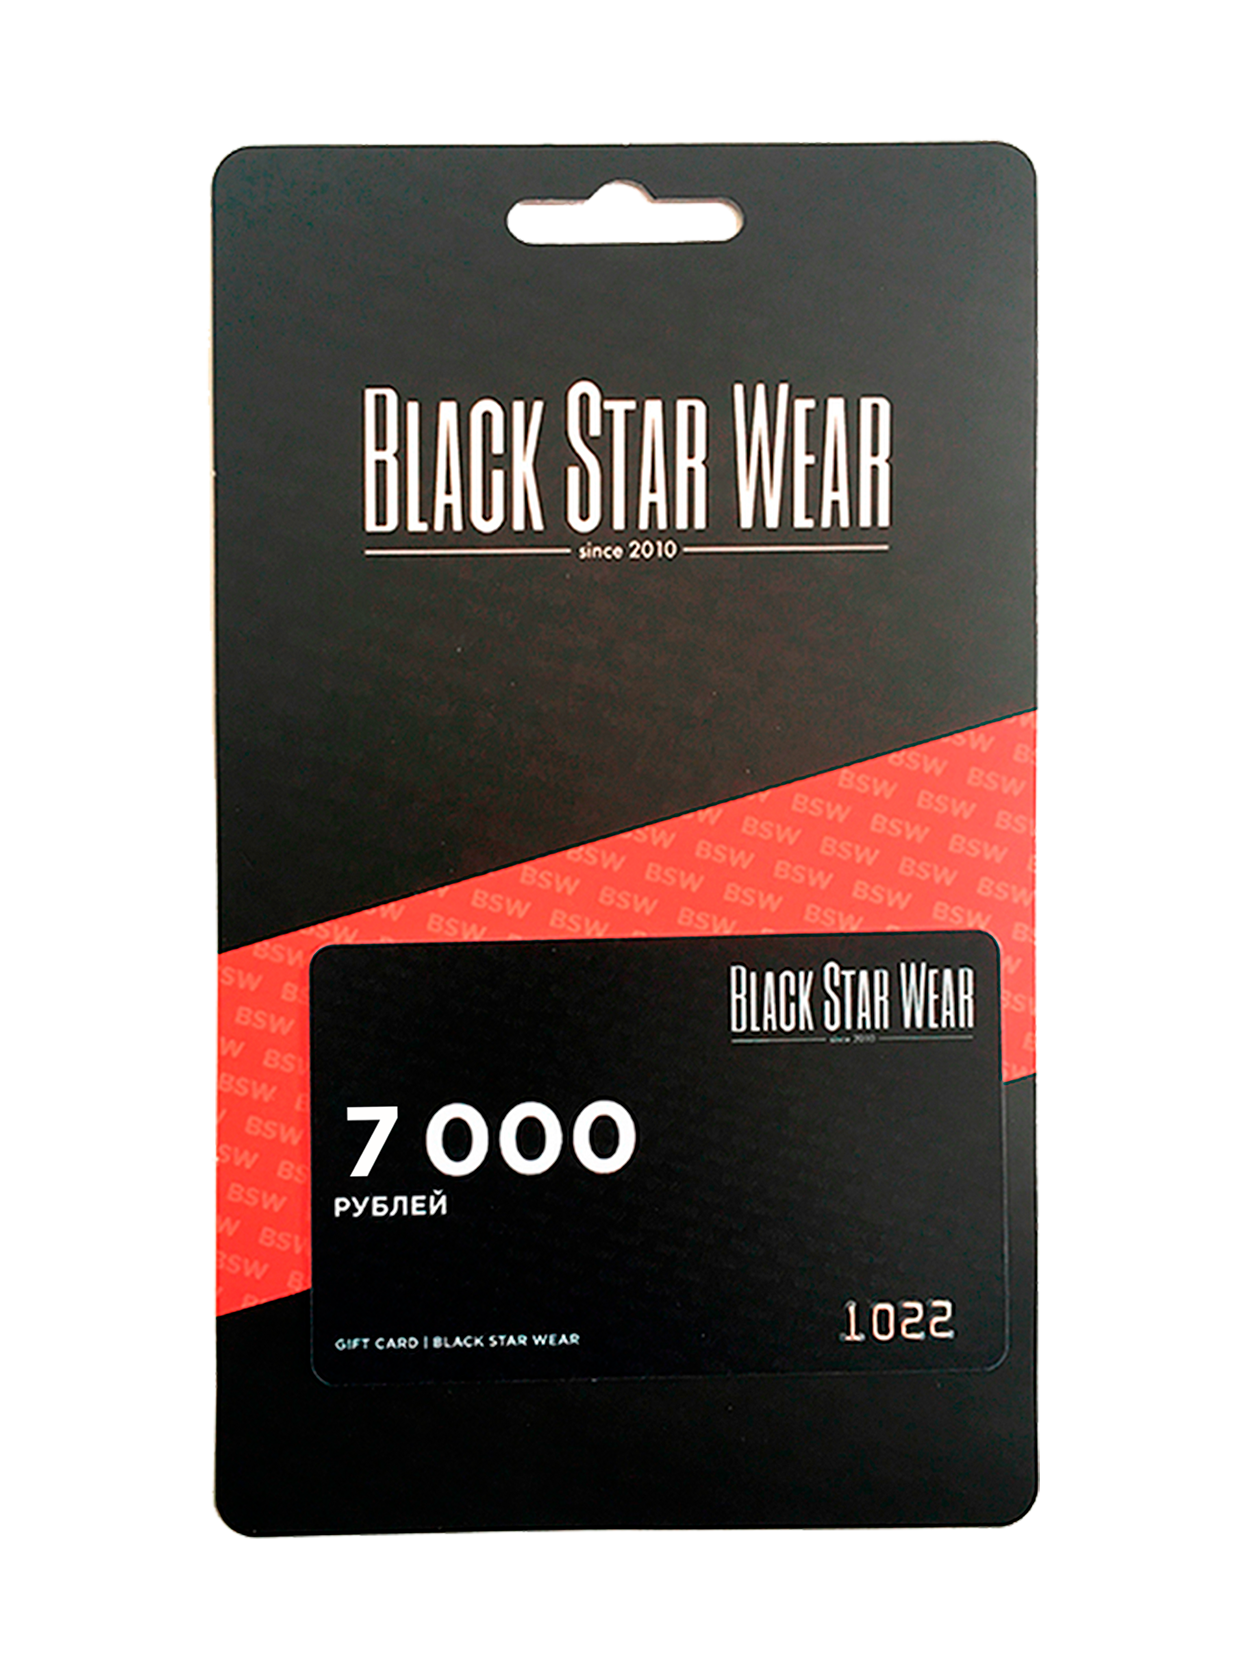 Подарочная карта  7000 рублейTo find a perfect gift is always a challenge - Black Star Wear gift card is the answer to all your gift-giving headaches! Perfect for any occasion with a balance of 7000 rur.<br><br>size: One size<br>color: Multicolor<br>gender: unisex